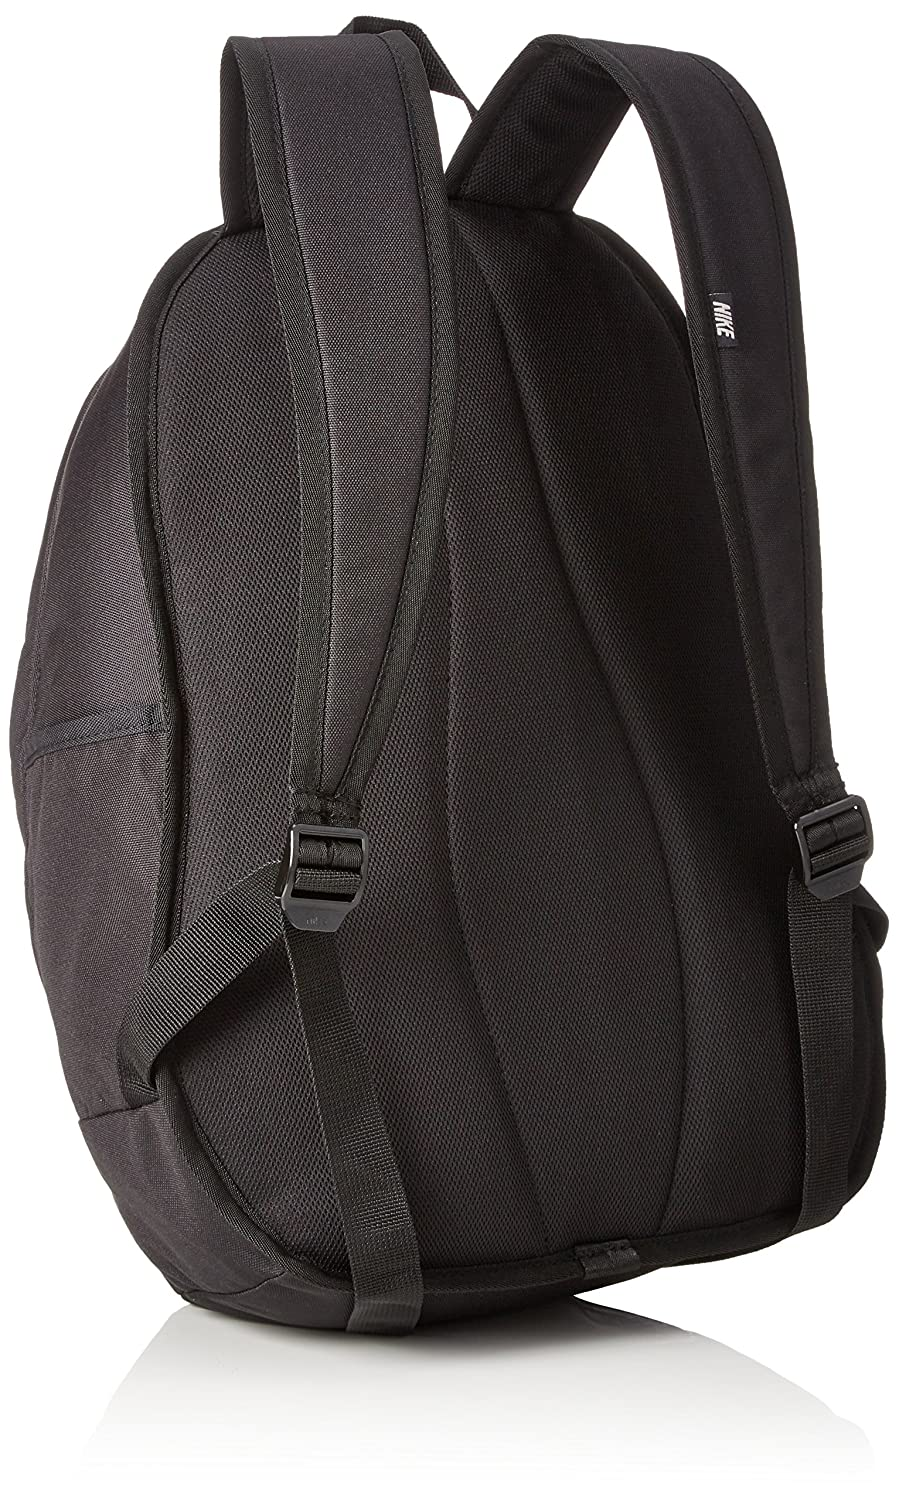 9a0b63eecf40 Black Nike Backpack Academy- Fenix Toulouse Handball